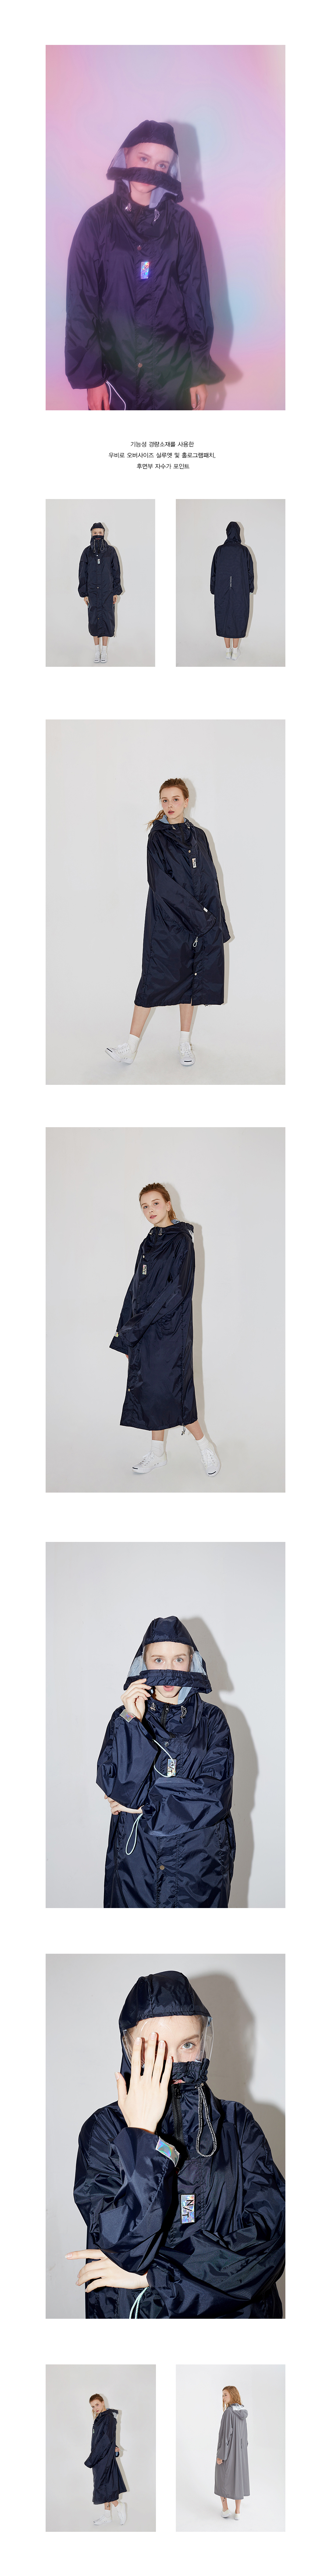 680-OVERSIZED-RAIN-COAT(bk)_02.jpg